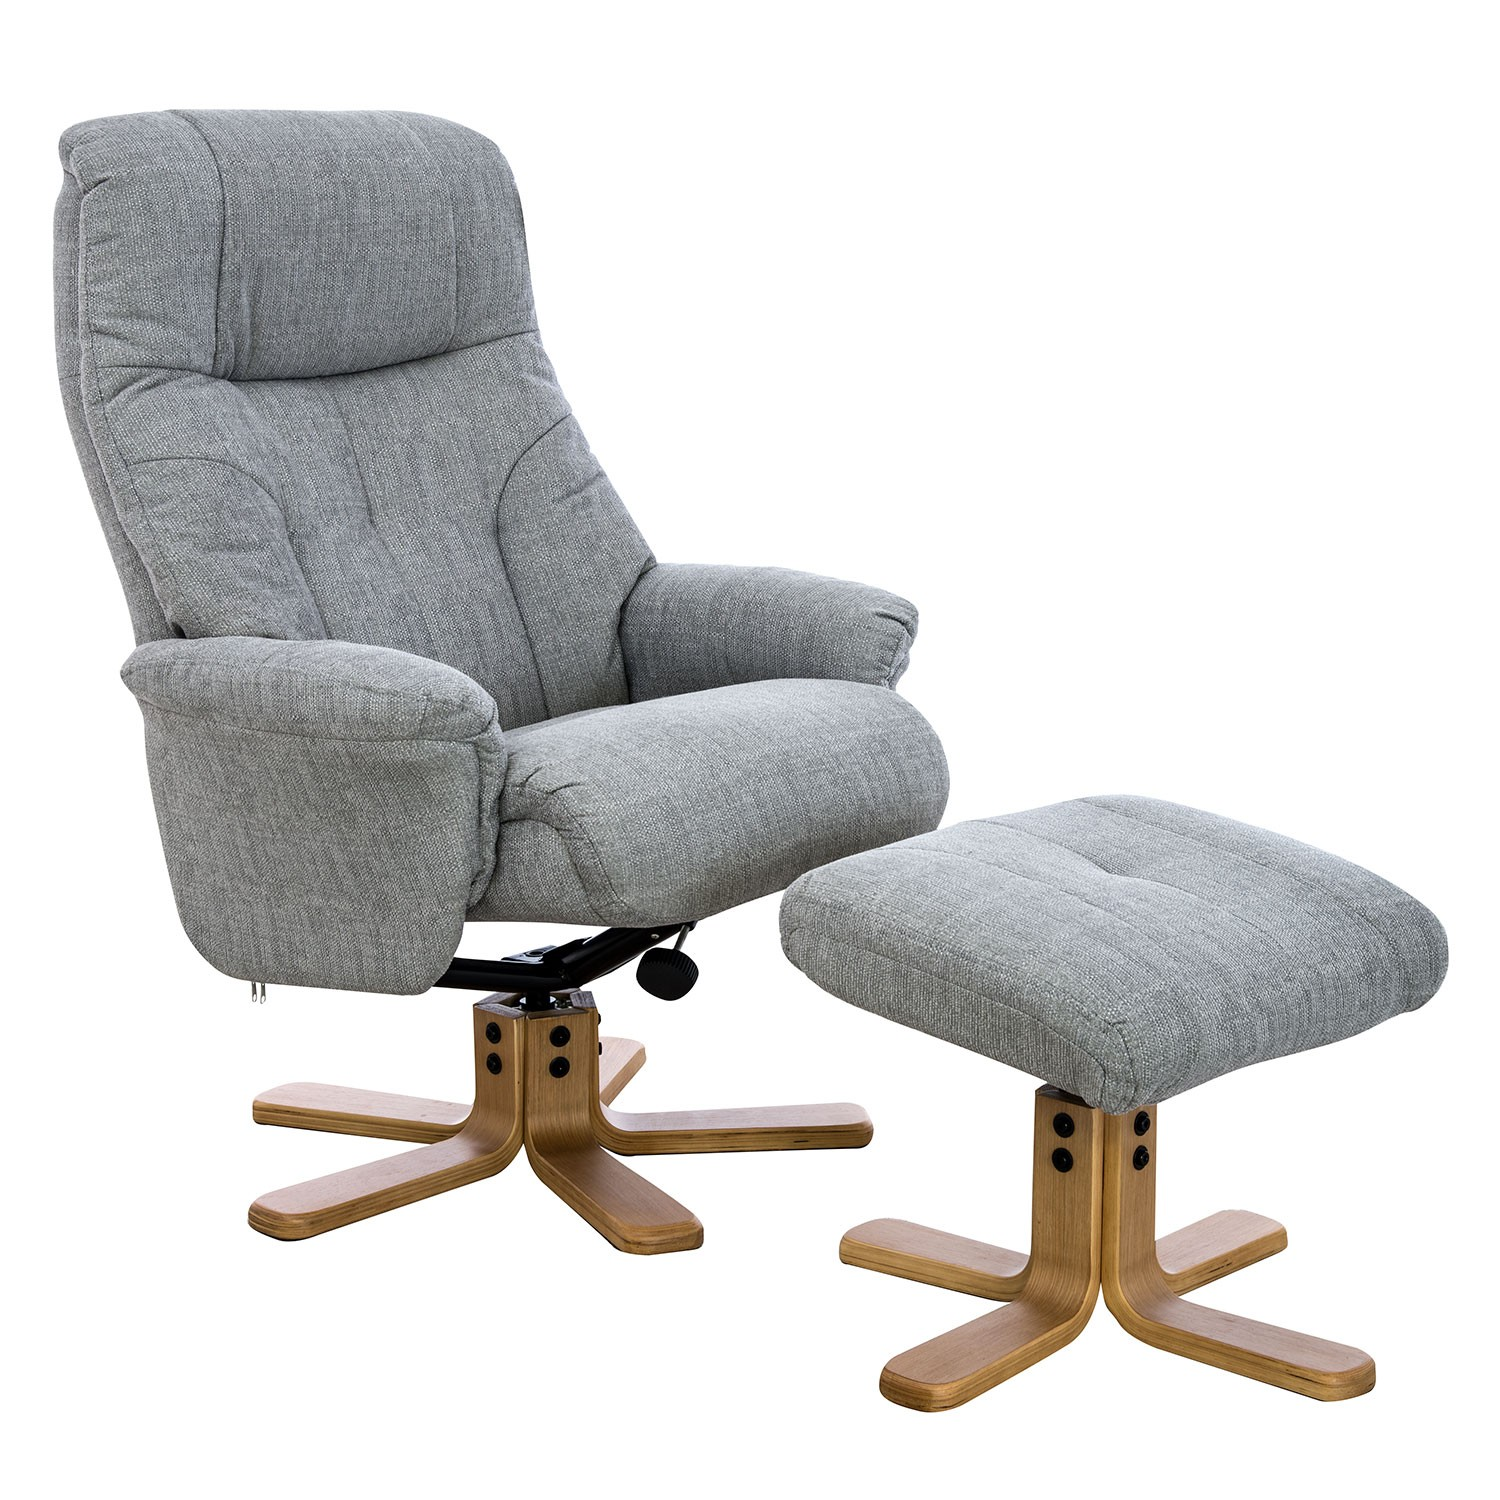 Amazing Trento Swivel Recliner Fabric Chair And Footstool Silver Pdpeps Interior Chair Design Pdpepsorg